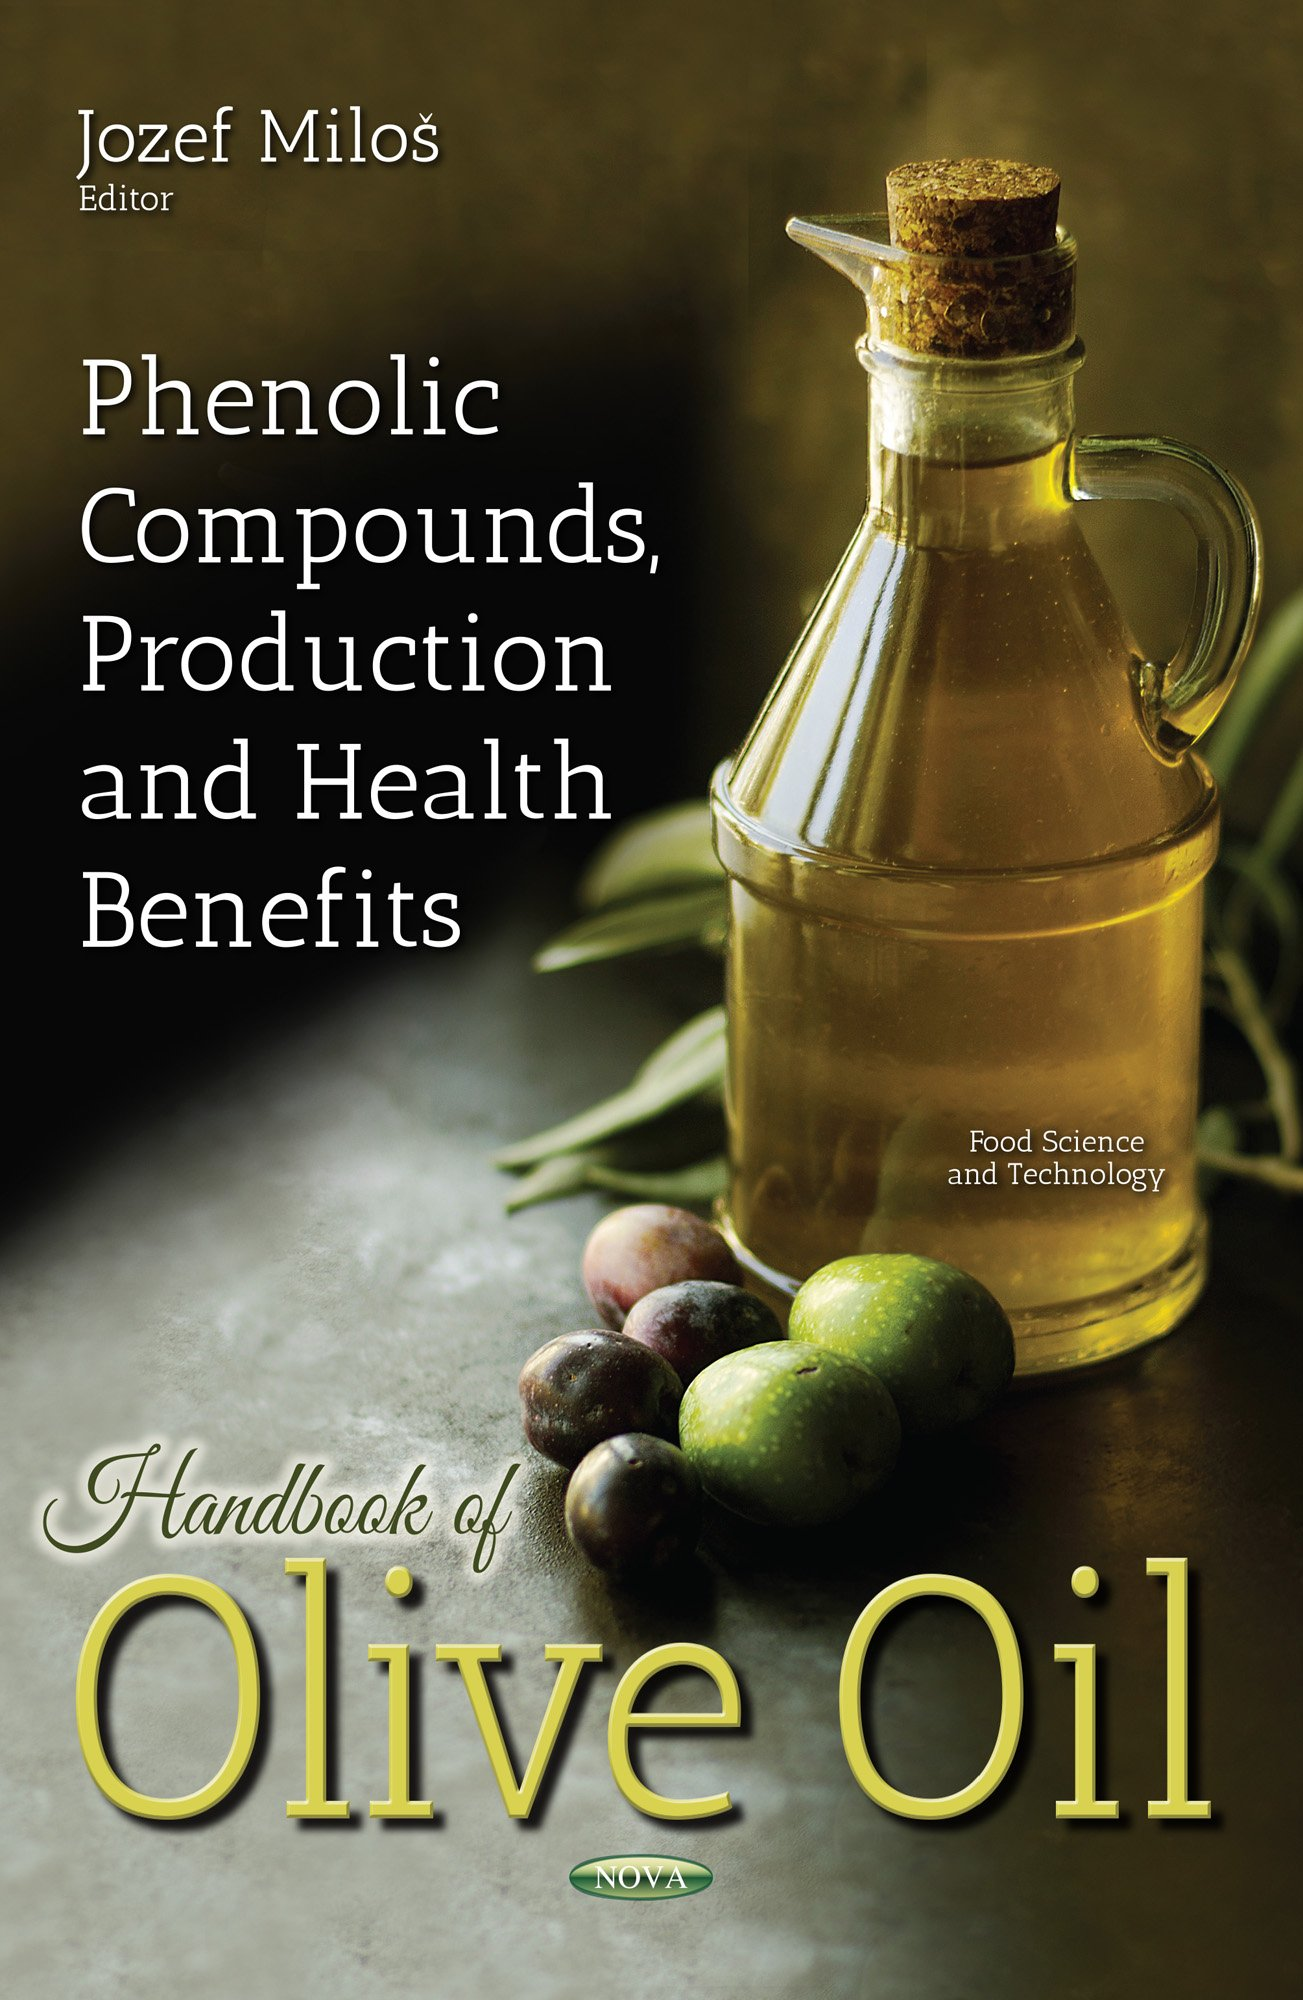 Handbook of Olive Oil: Phenolic Compounds, Production and Health Benefits (Food Science and Technology) PDF